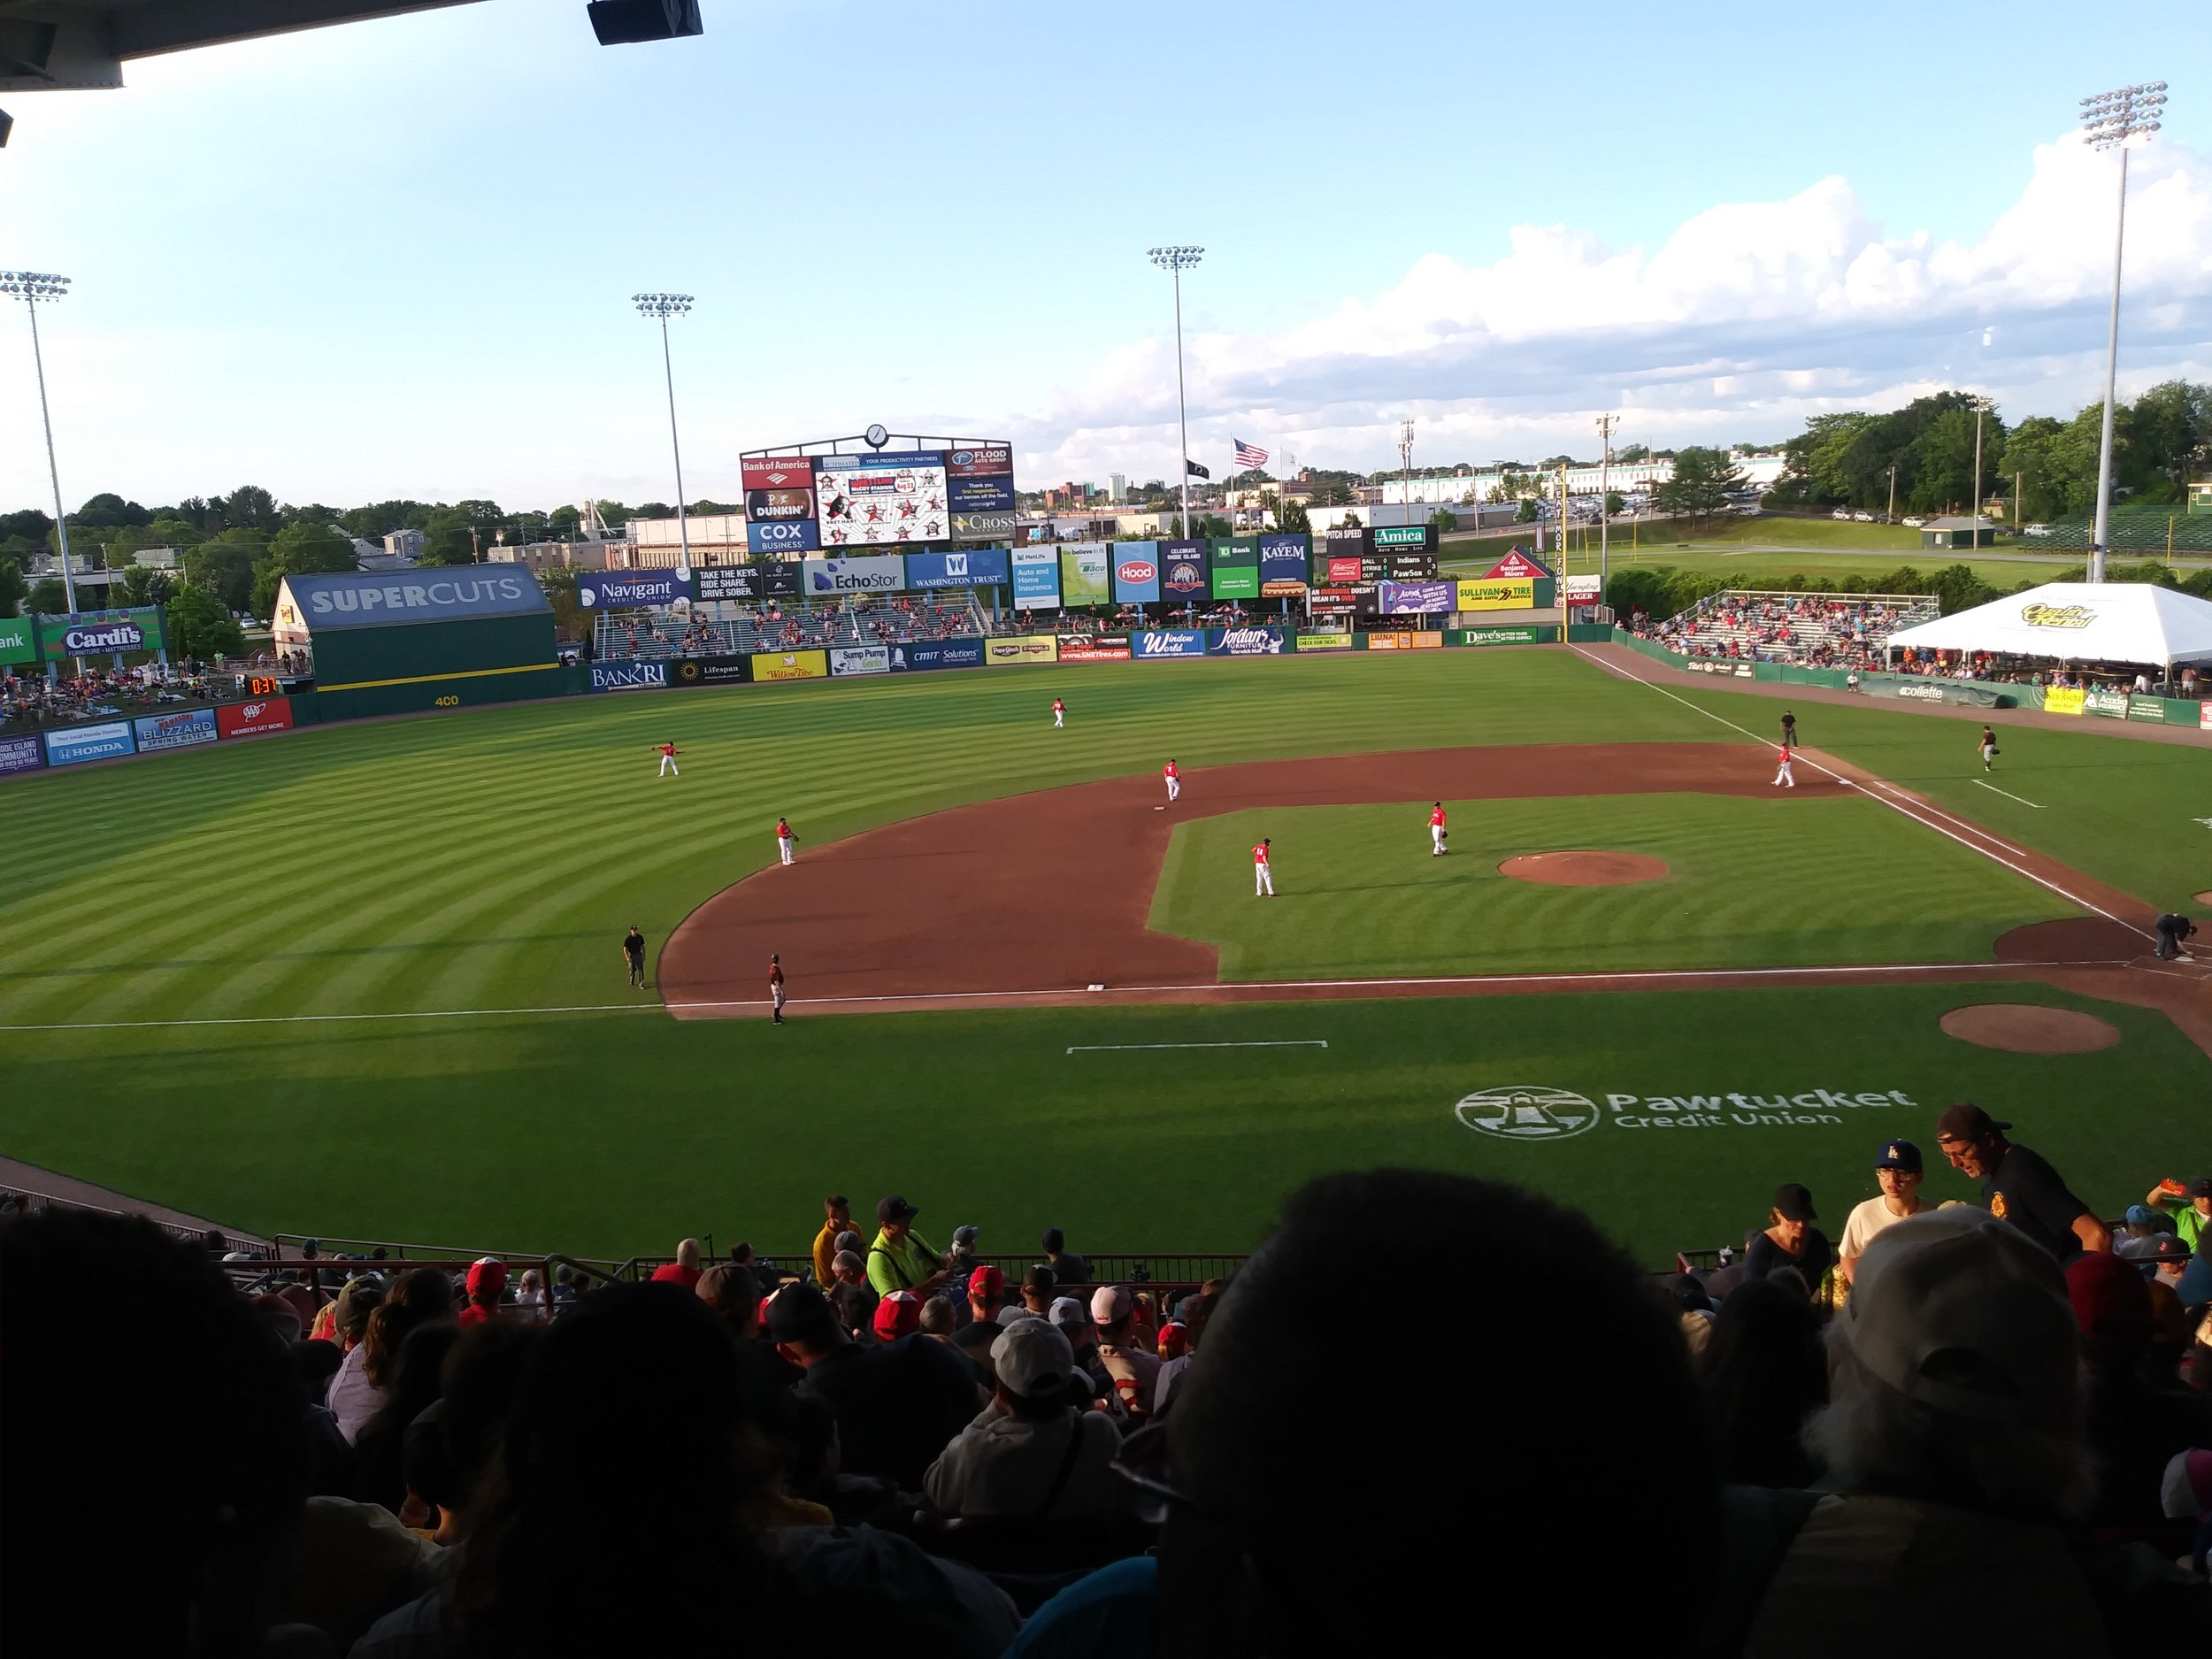 St. Paul's at the Paw Sox Game in June